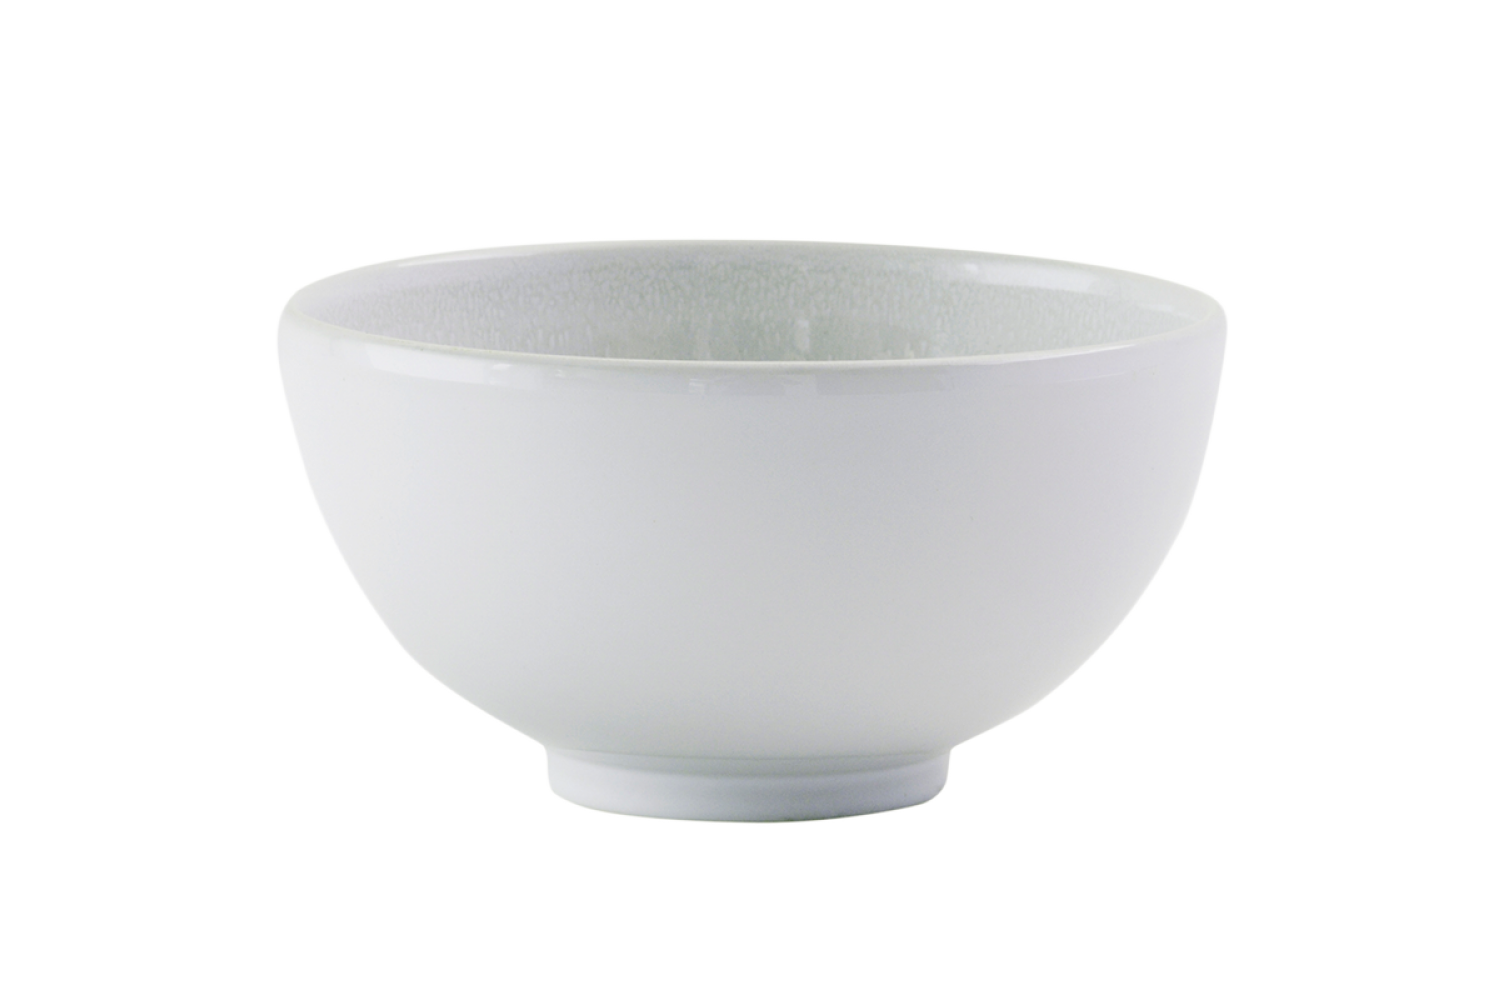 Jars Ceramics Poeme Neige Cereal Bowl 6 1 Quot